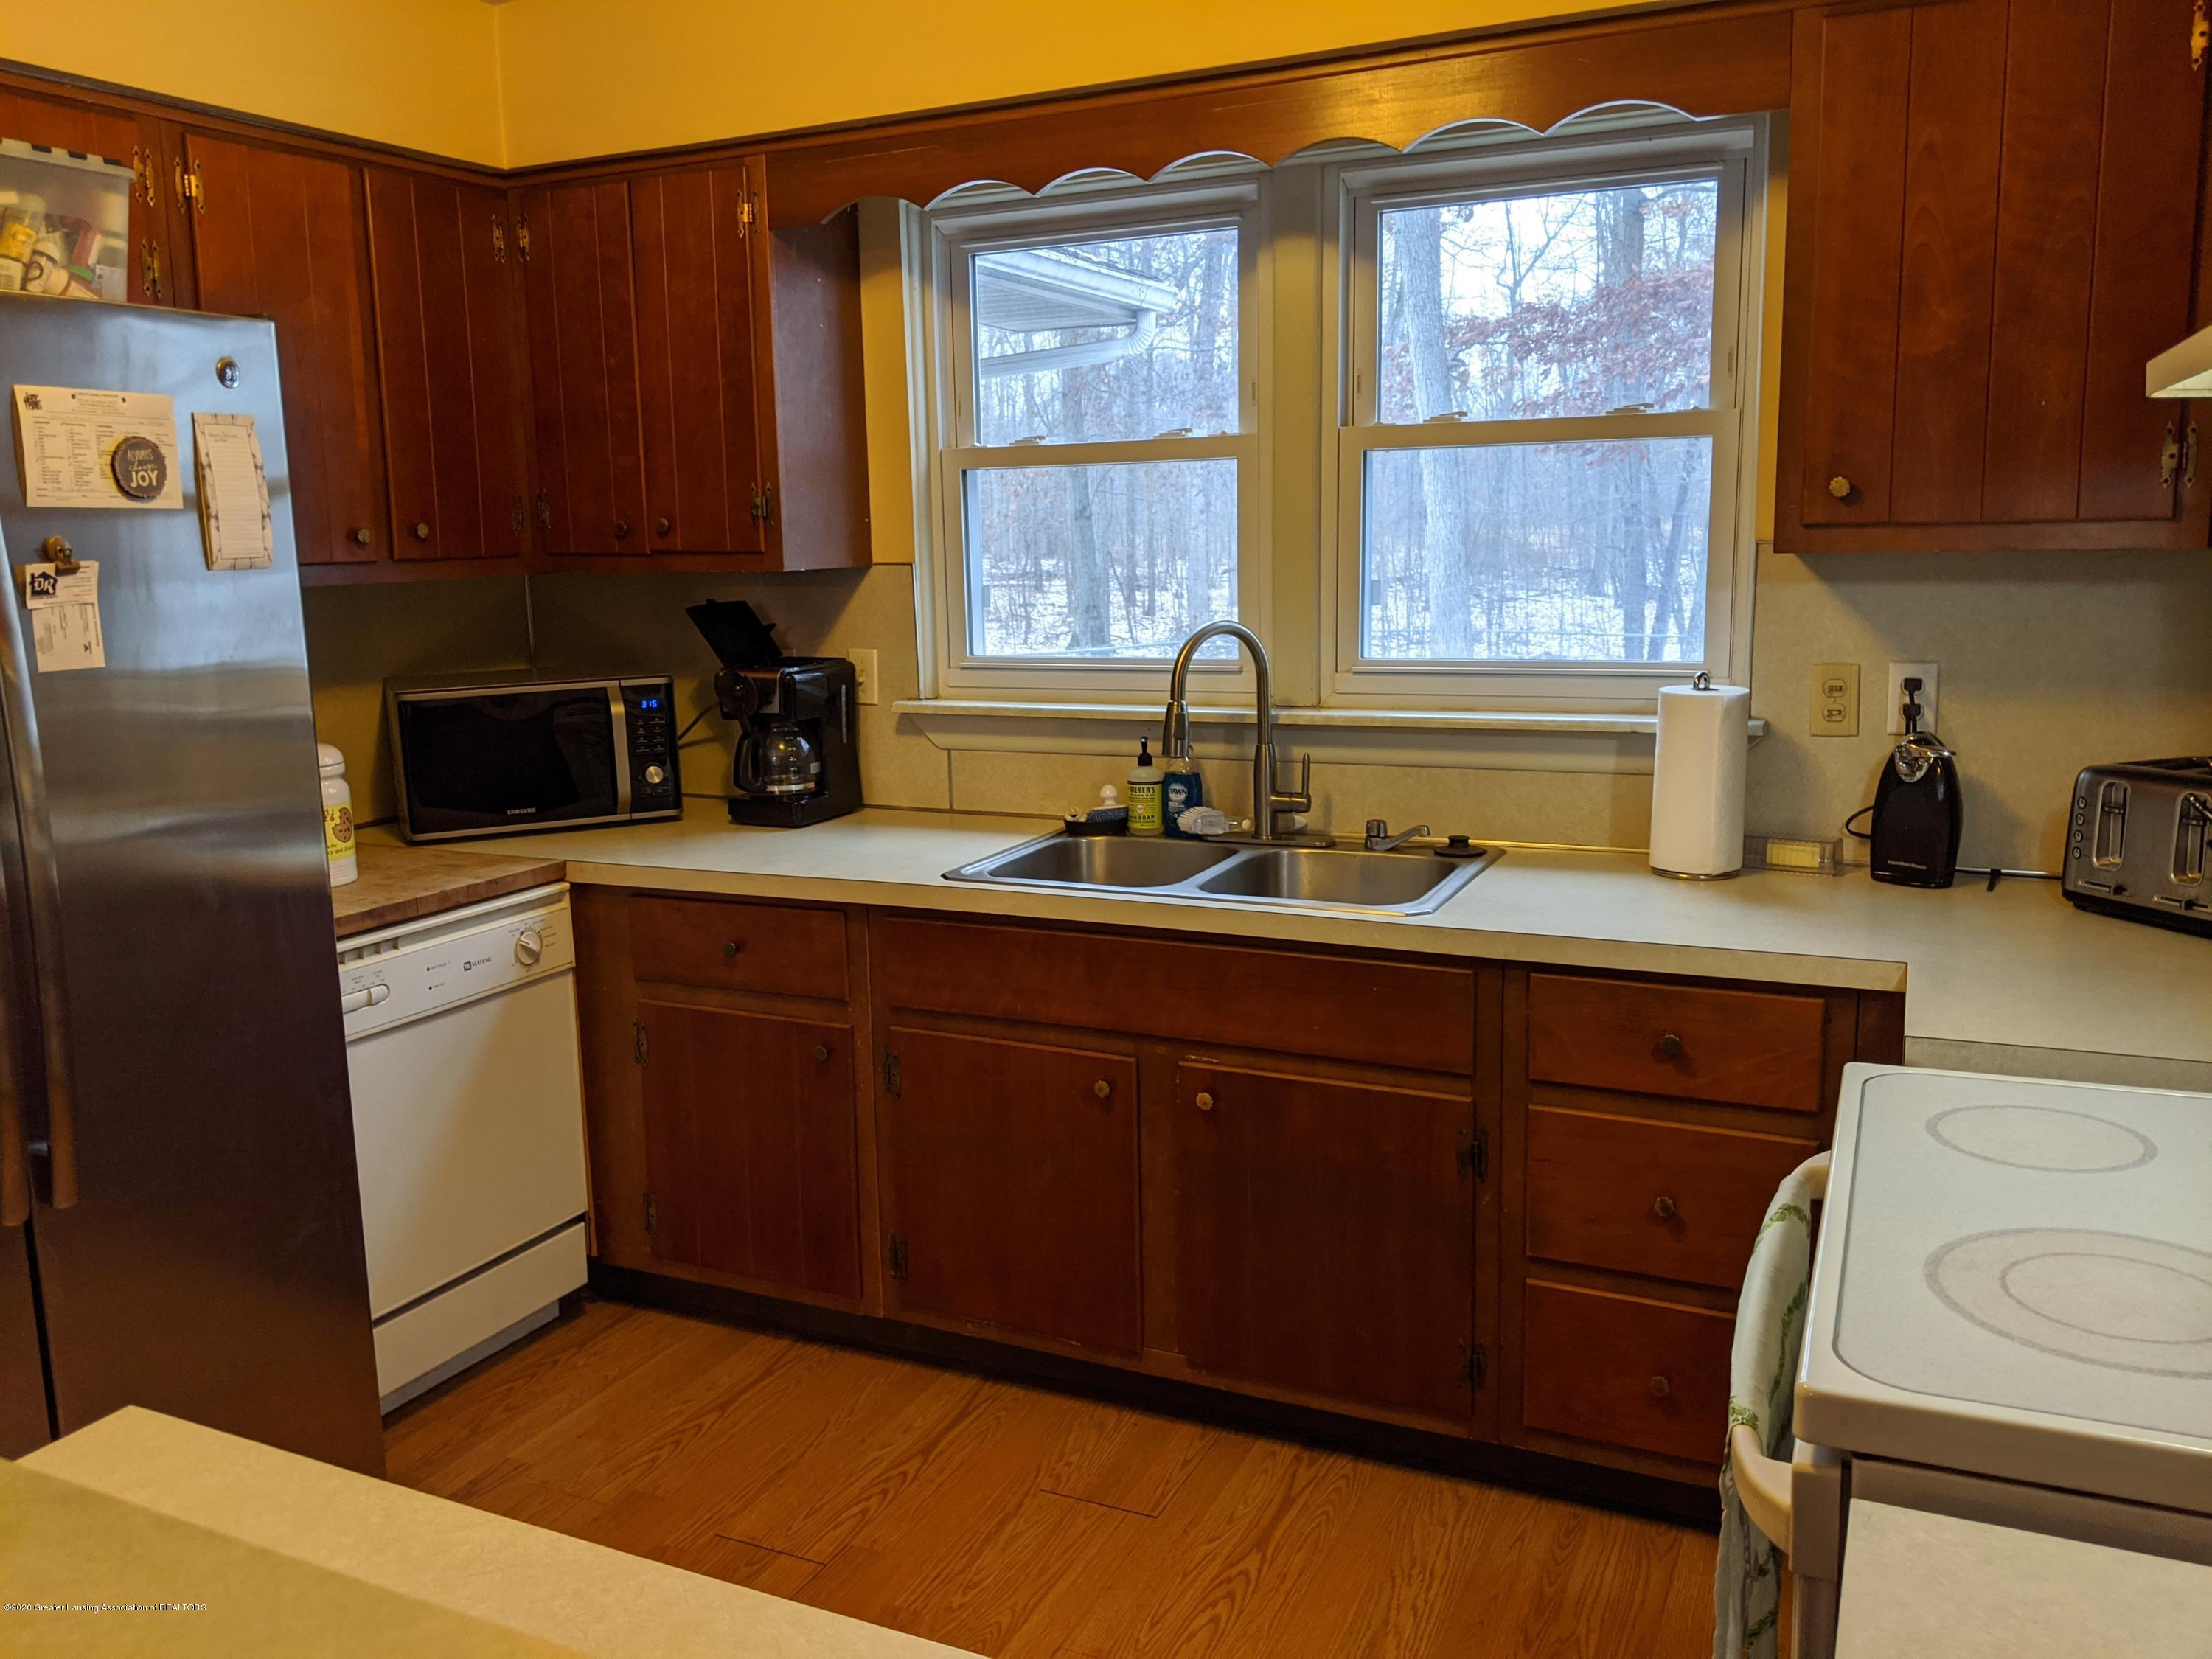 9819 Shaftsburg Rd - 9819 Kitchen 2 - 6